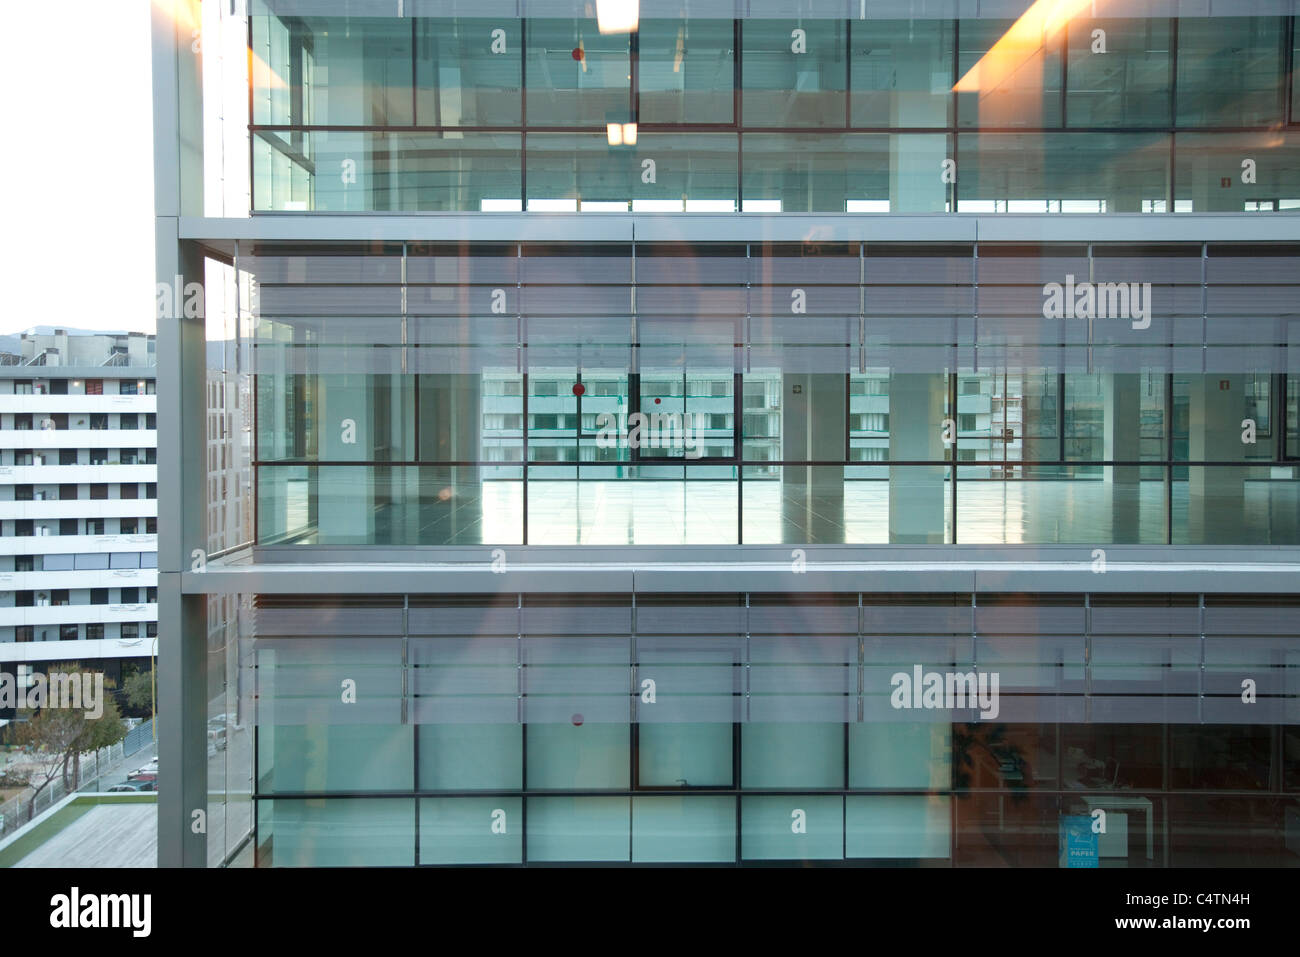 Looking into office building - Stock Image